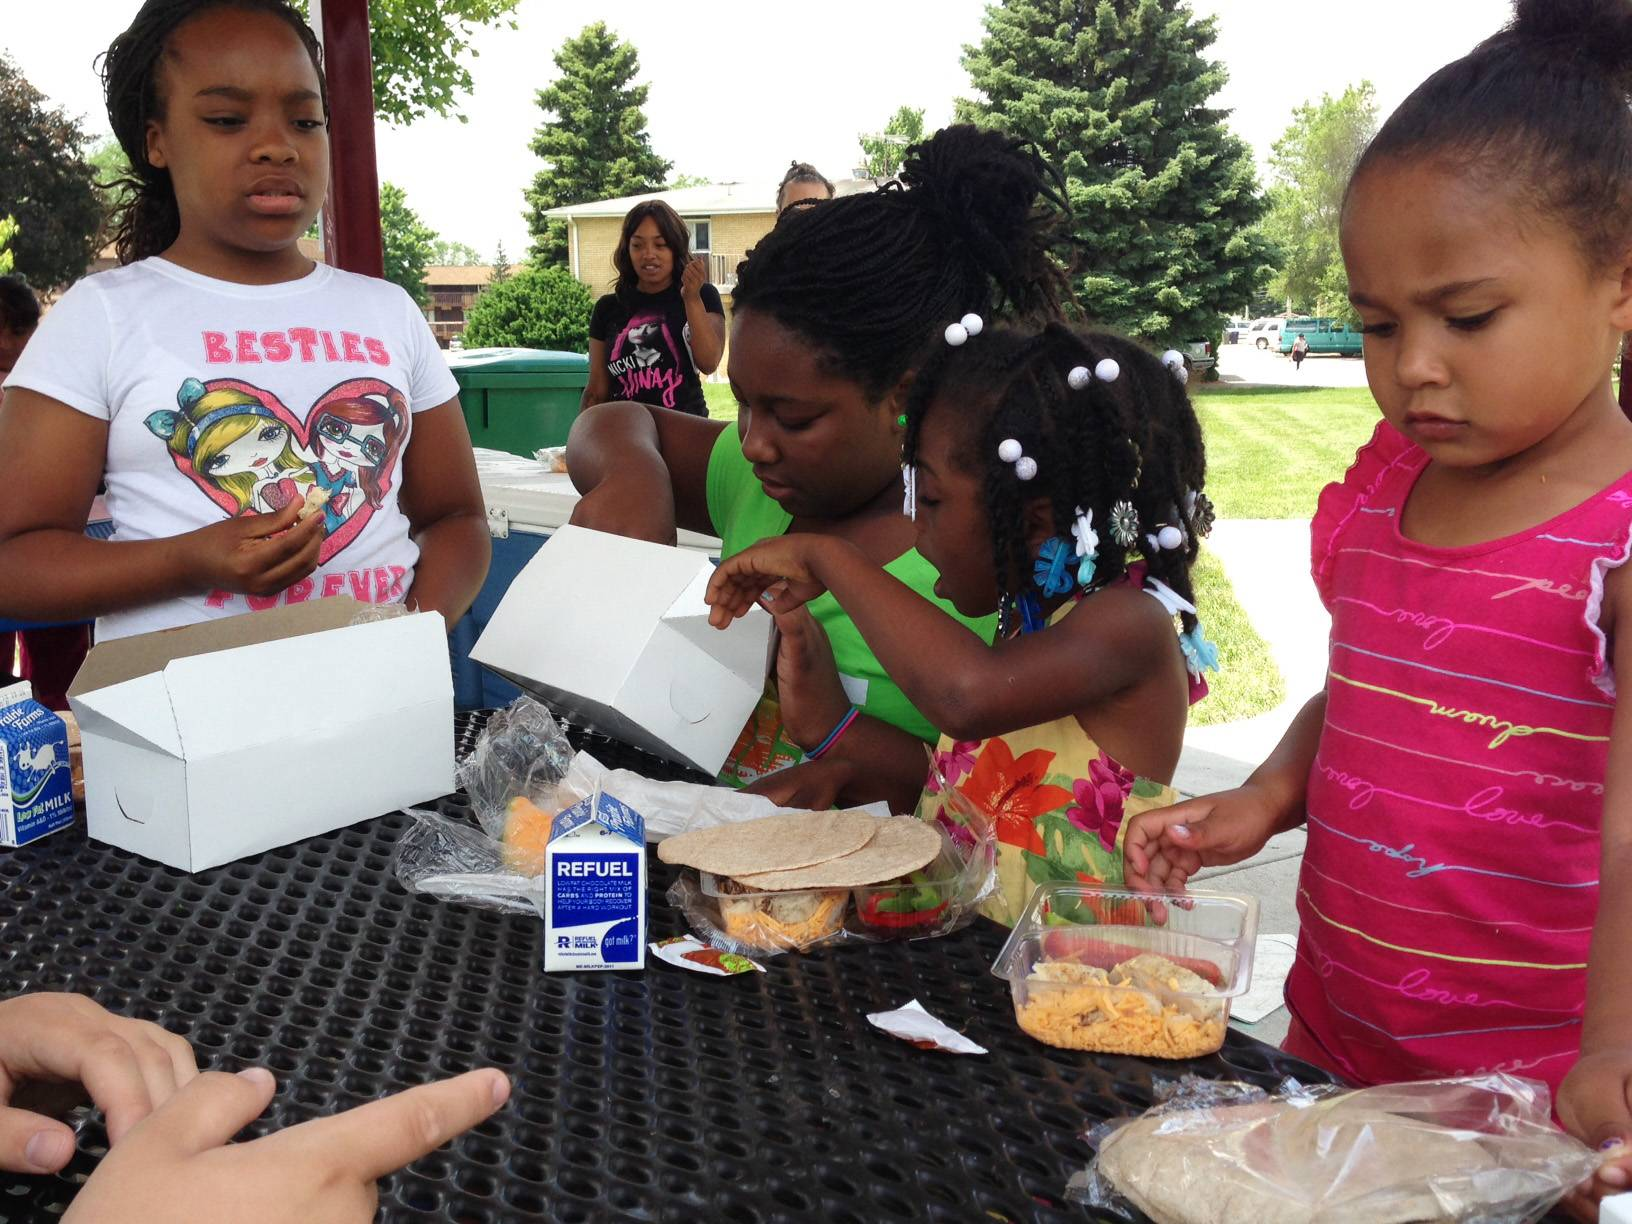 The free summer lunch program for kids 18 and younger kicks off June 8 at 10 locations in Elgin. In this 2013 photo, Geniah Phillips, 10, from left, Maya Lymas, 10, Genia Phillips, 5, and Raniya Freeney, 4, enjoy their lunch at Cornerstone Park.